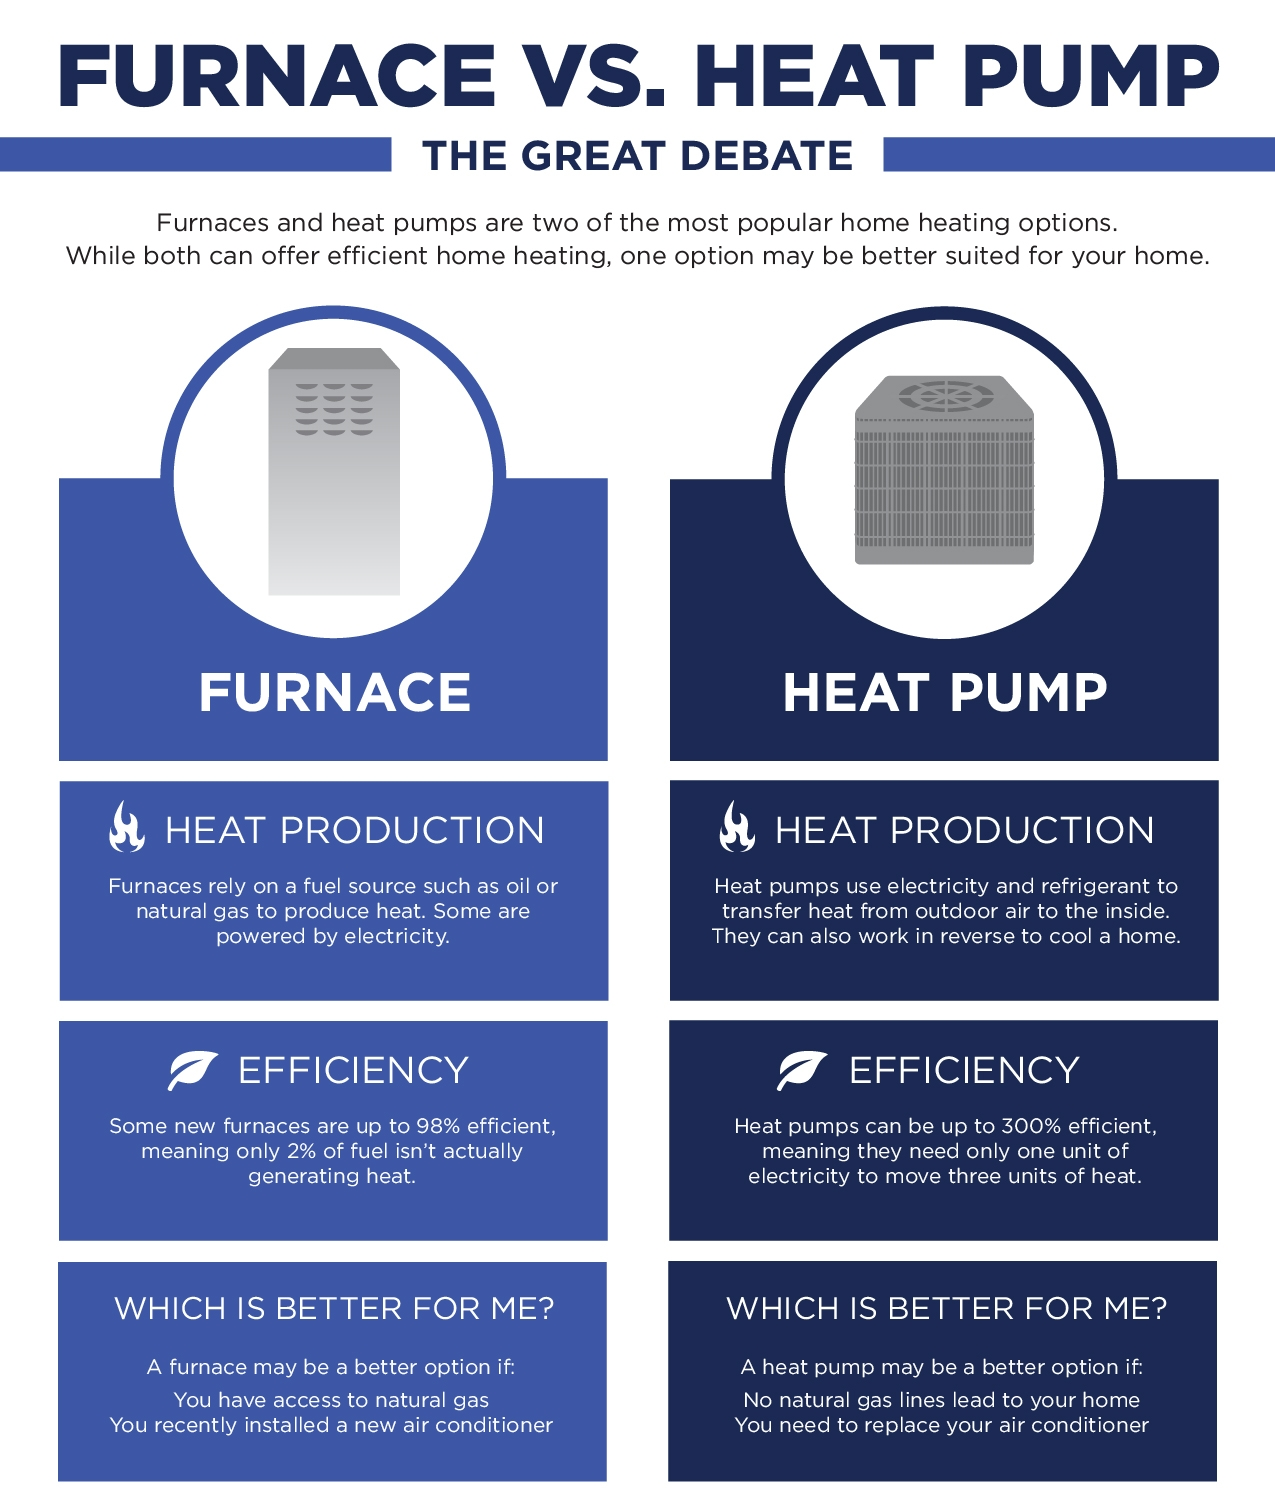 furnace vs heat pump infographic russells hvac